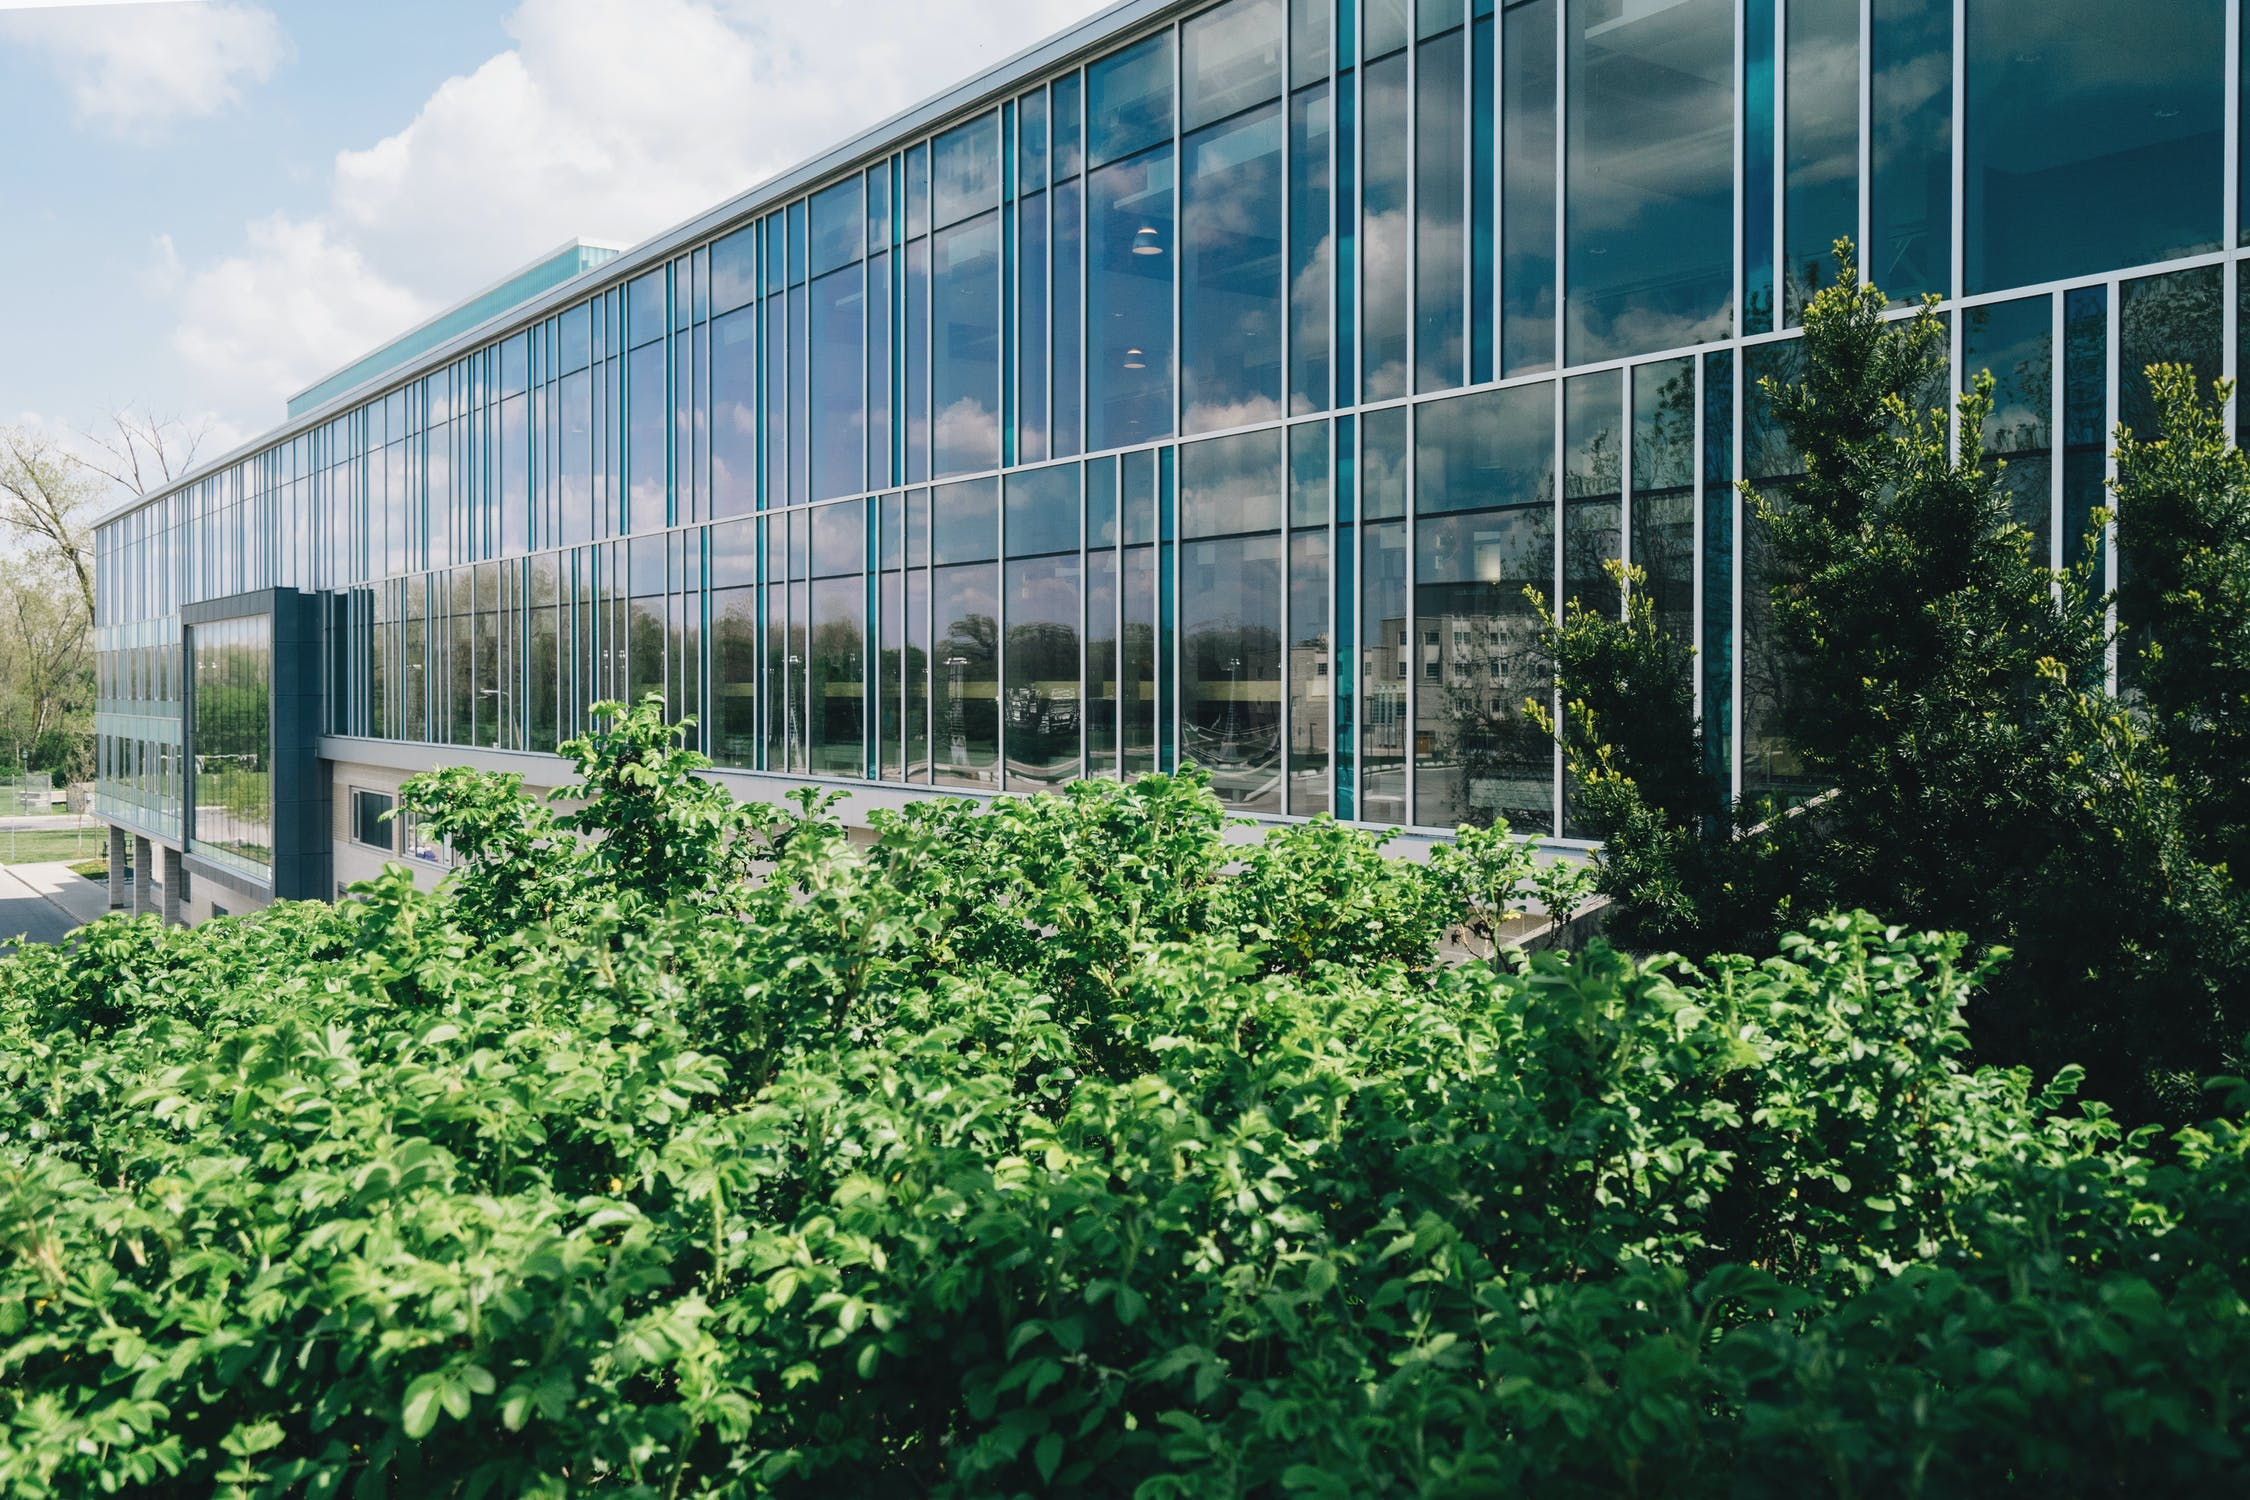 2021 Construction Trends Facilitated By Commercial Window Films - Commercial Window Film in Denver, Colorado